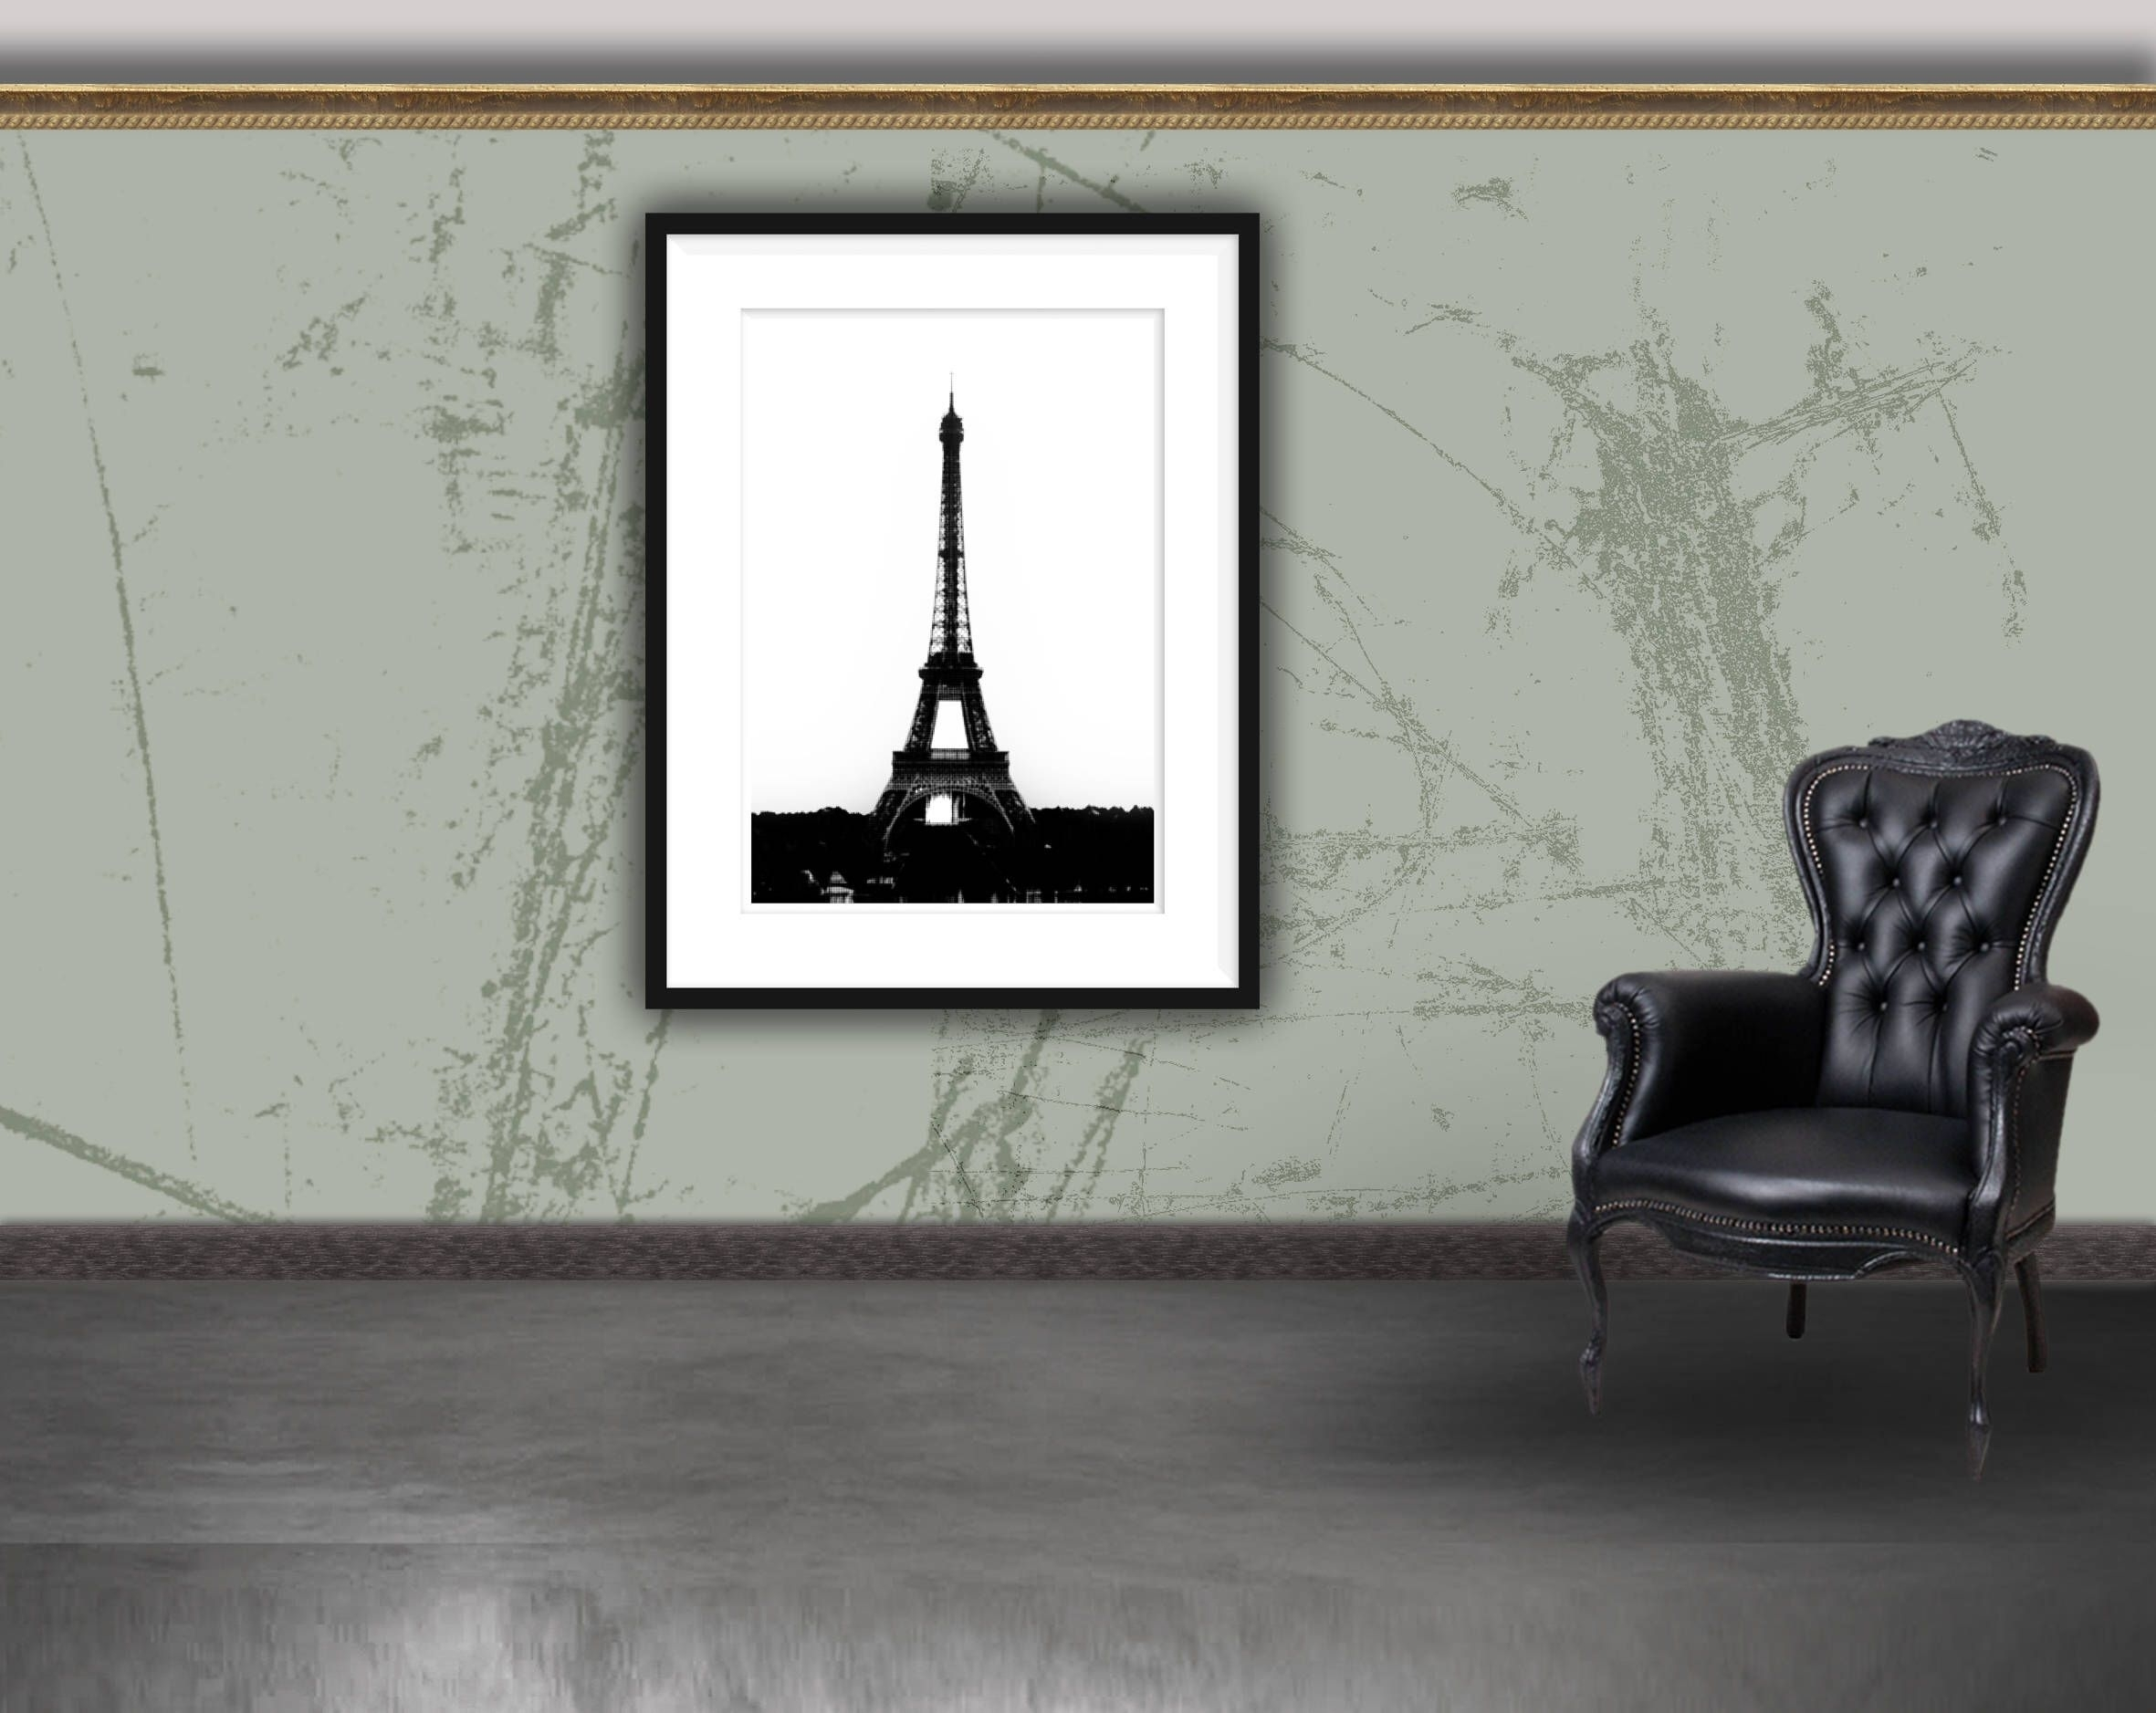 Paris Wall Art | Eiffel Tower Print | Paris Poster | Paris Print With Regard To Most Recently Released Paris Wall Art (Gallery 6 of 15)